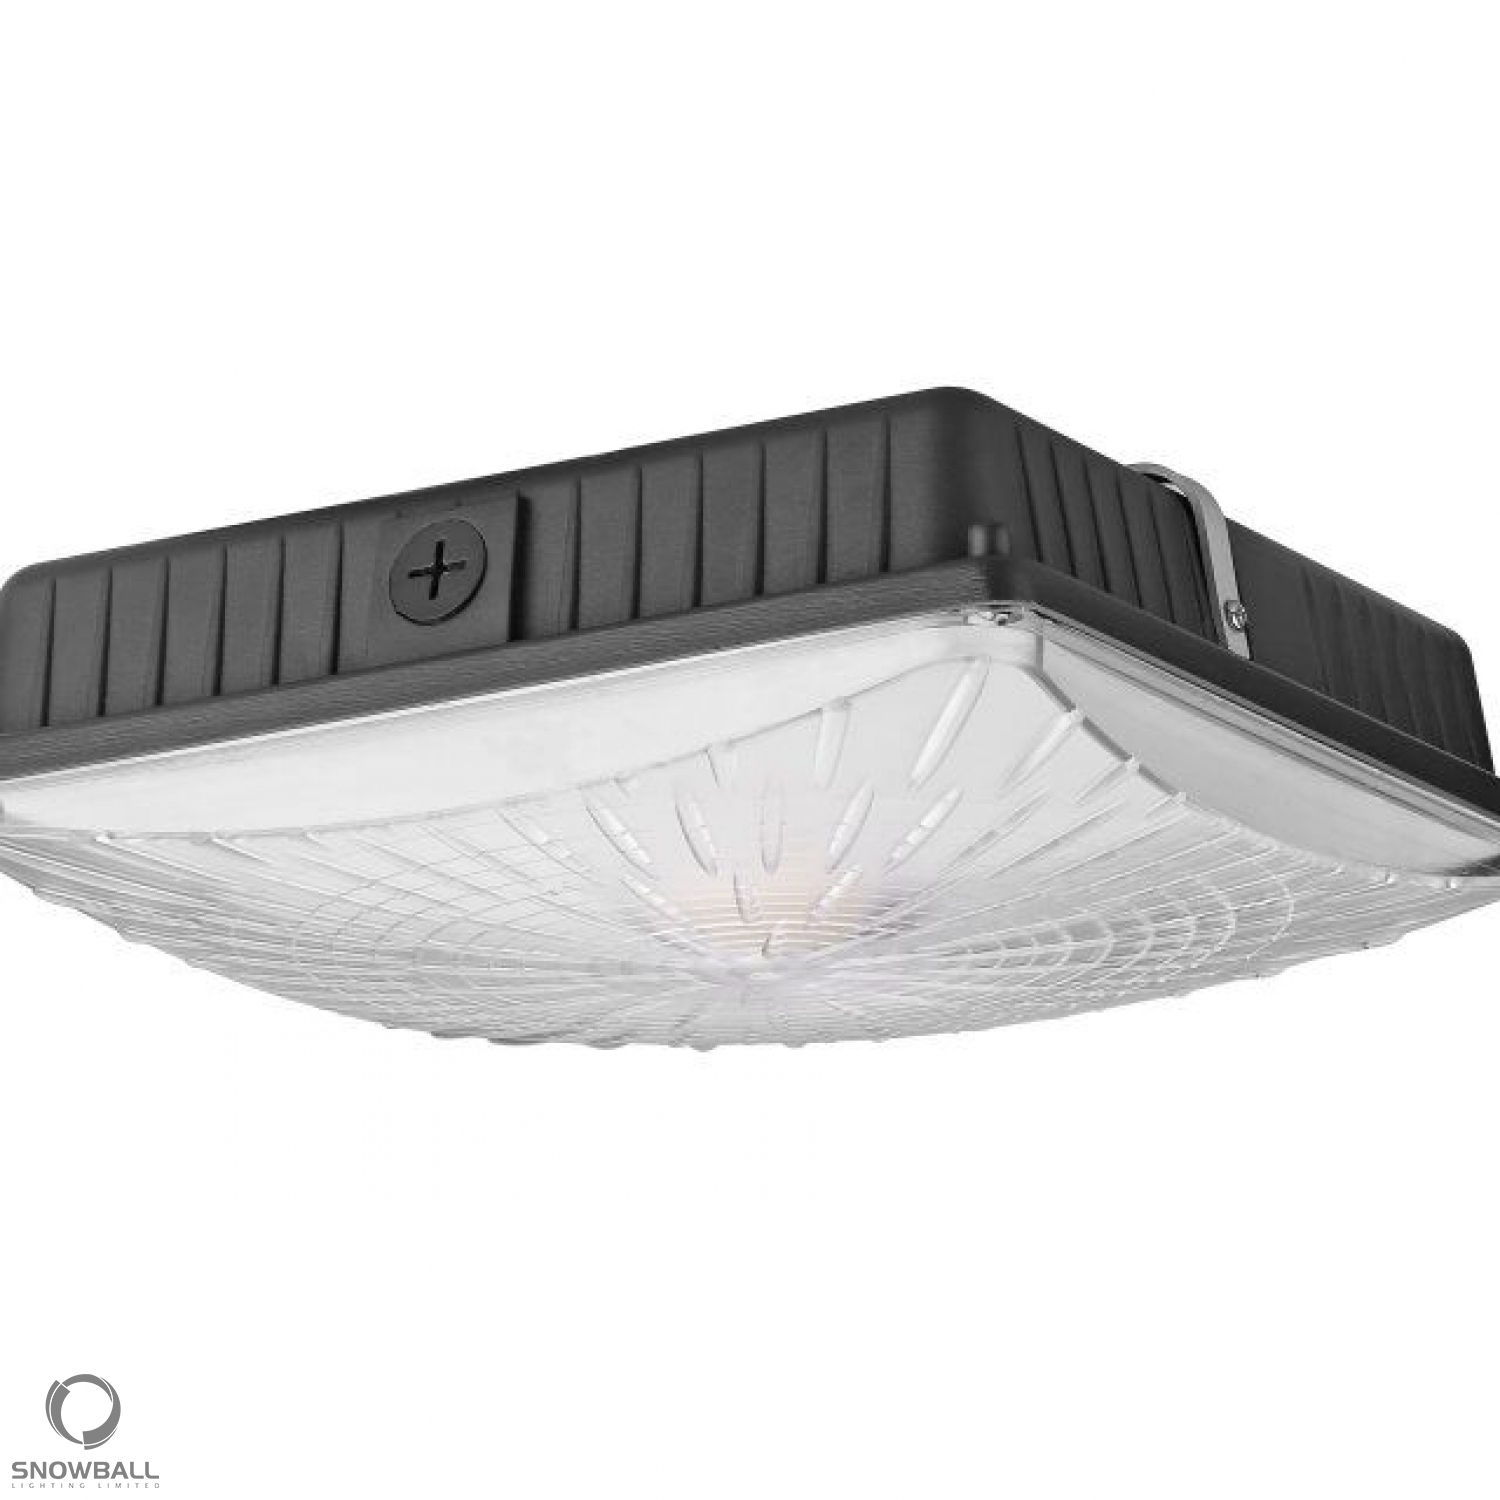 Cps series 45w led slim canopy light fixture products snowball loading image arubaitofo Images